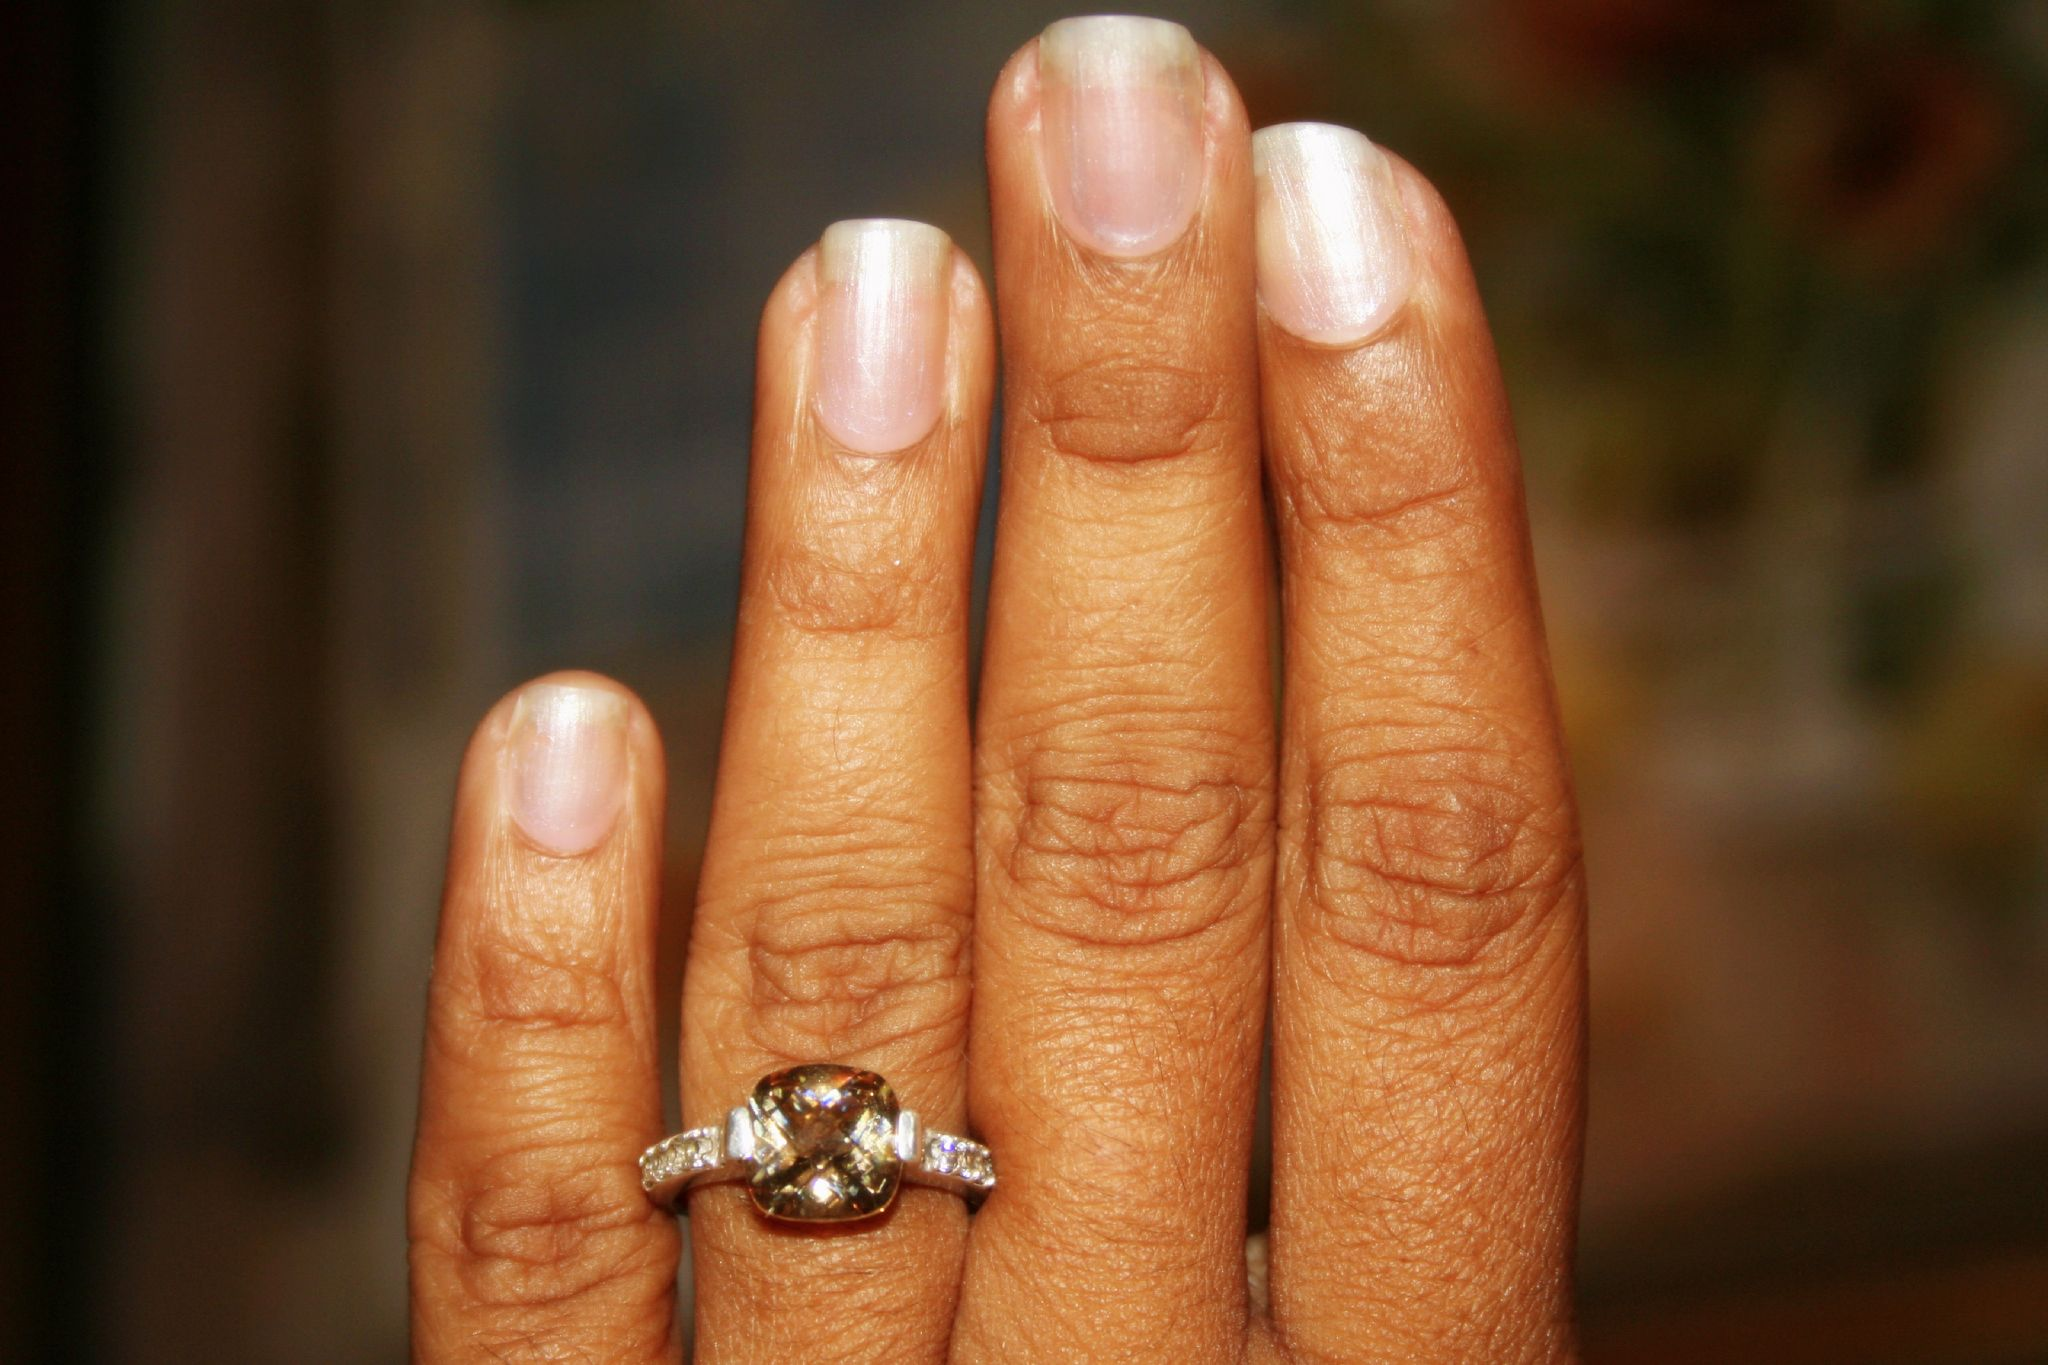 Why the fingers are bent nails and what should be done to fix it